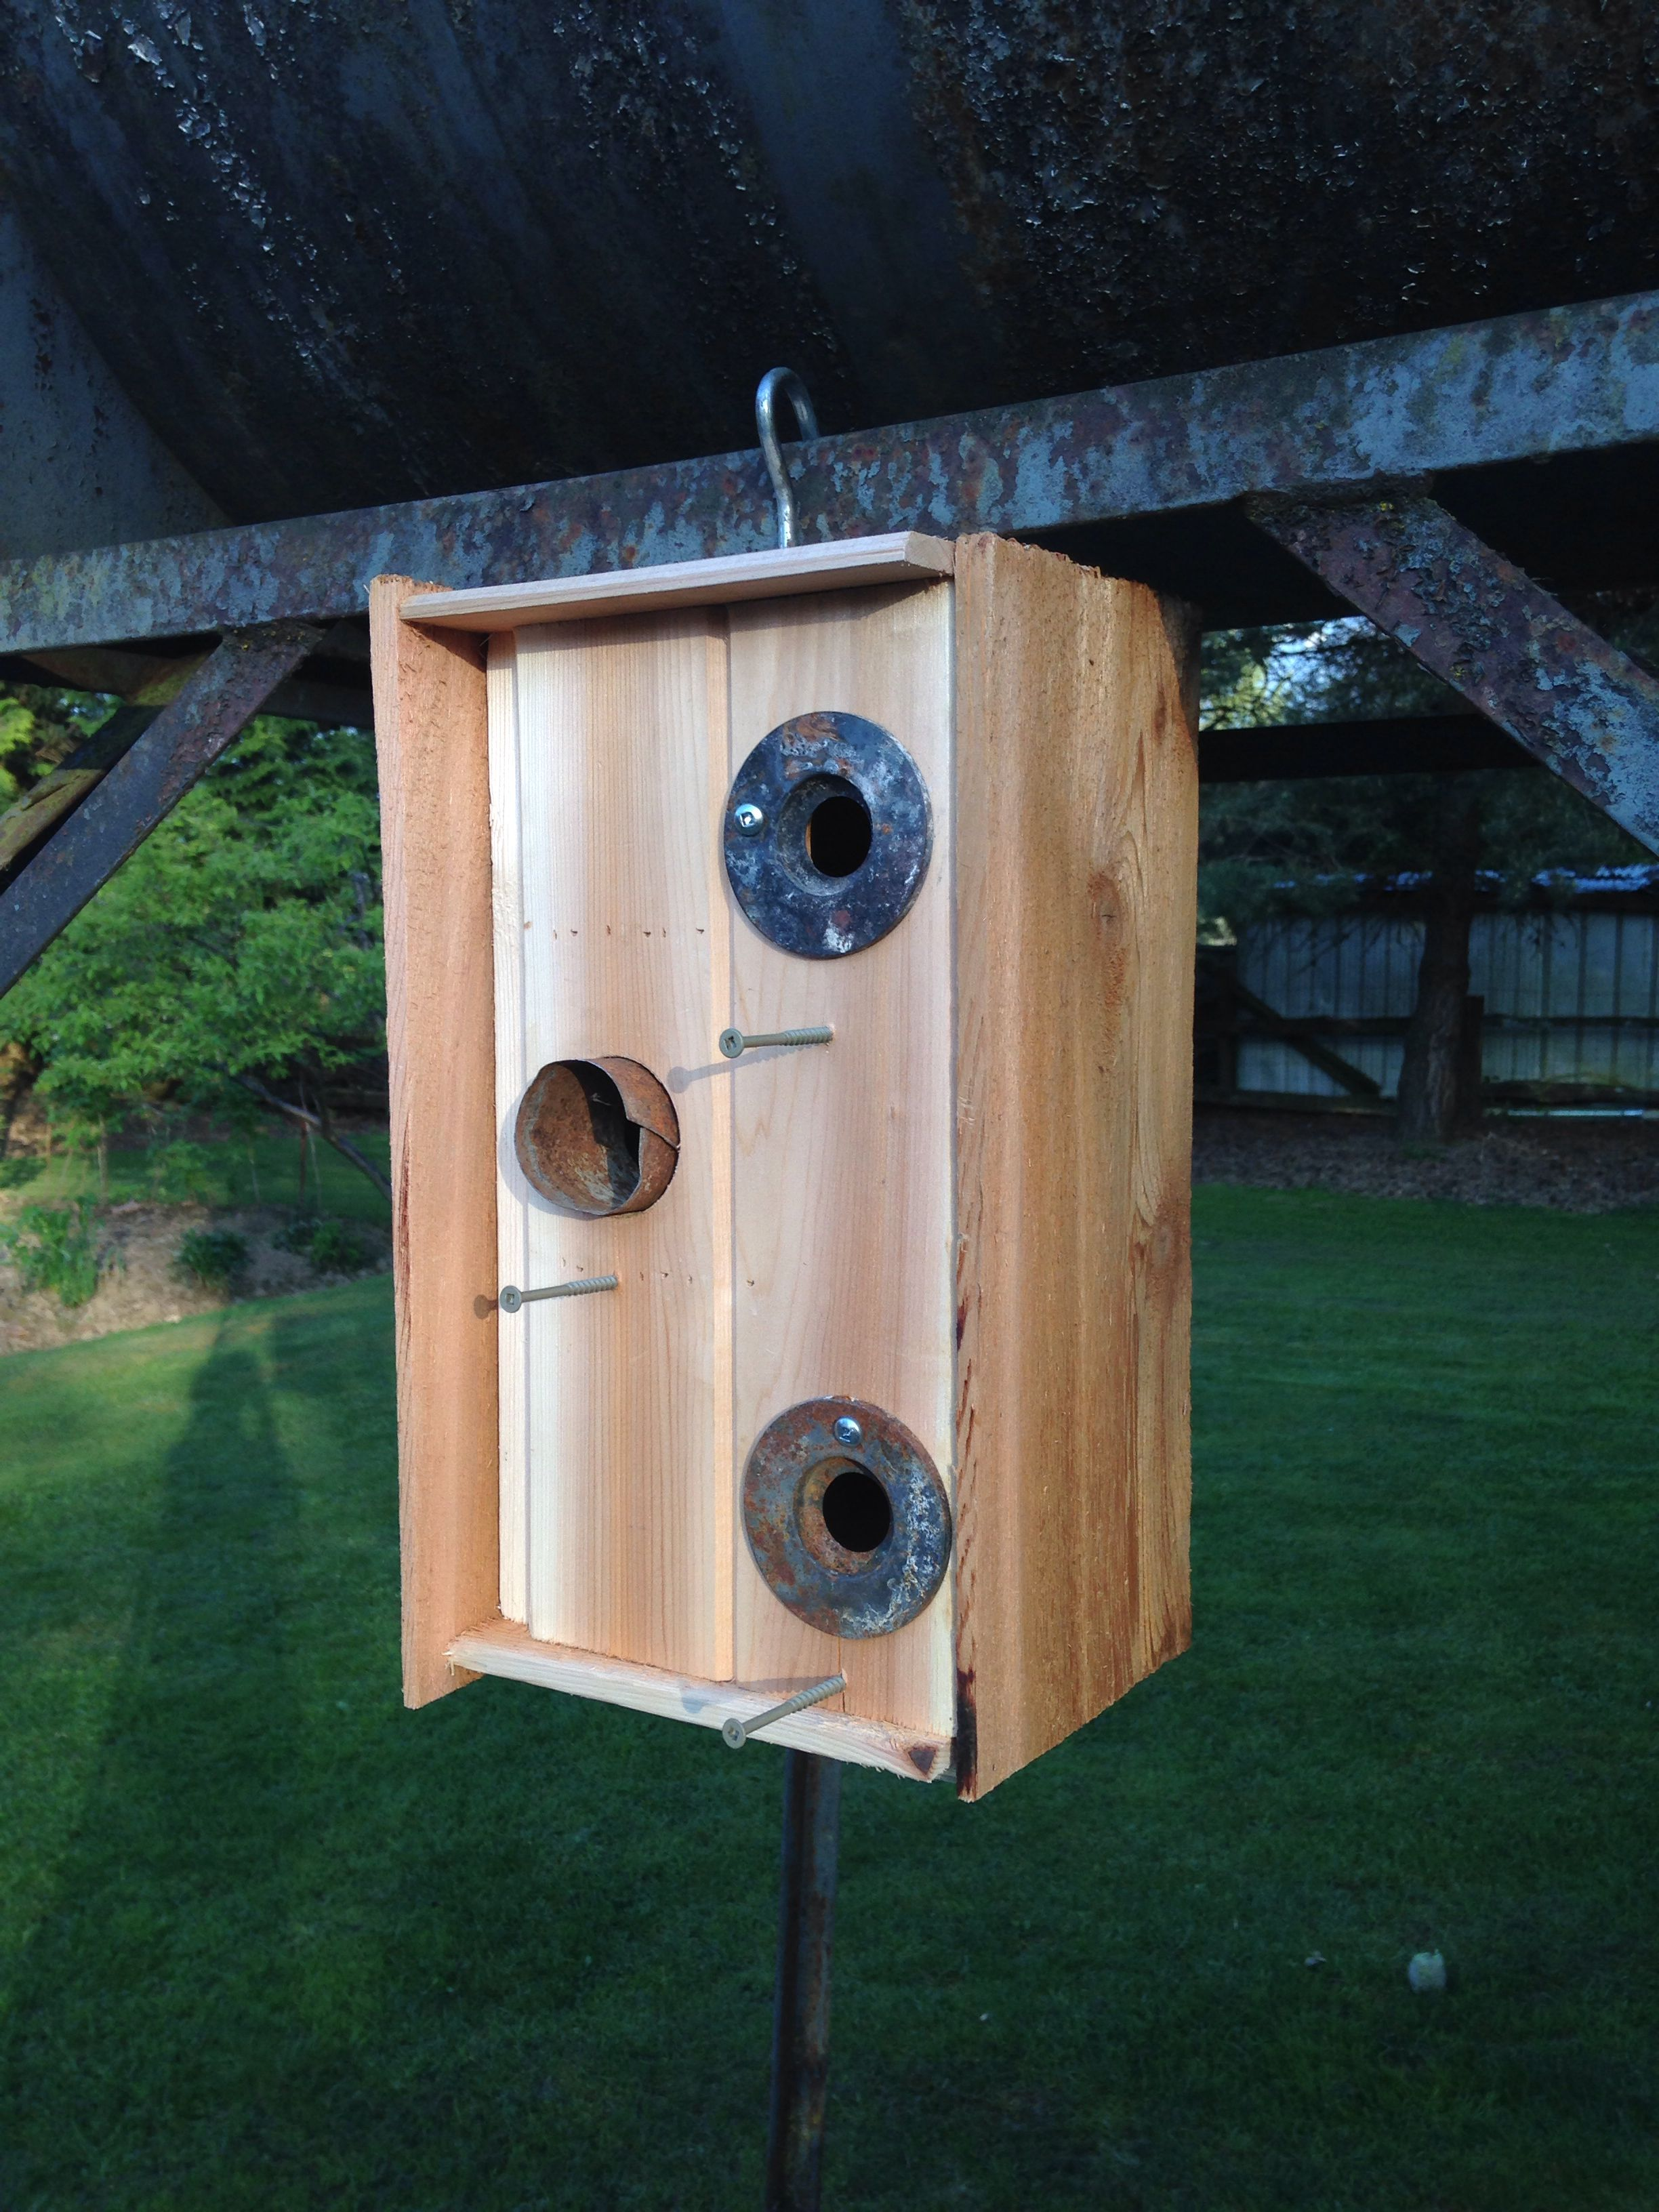 Tri-Birdhouse. For those who like to live together.